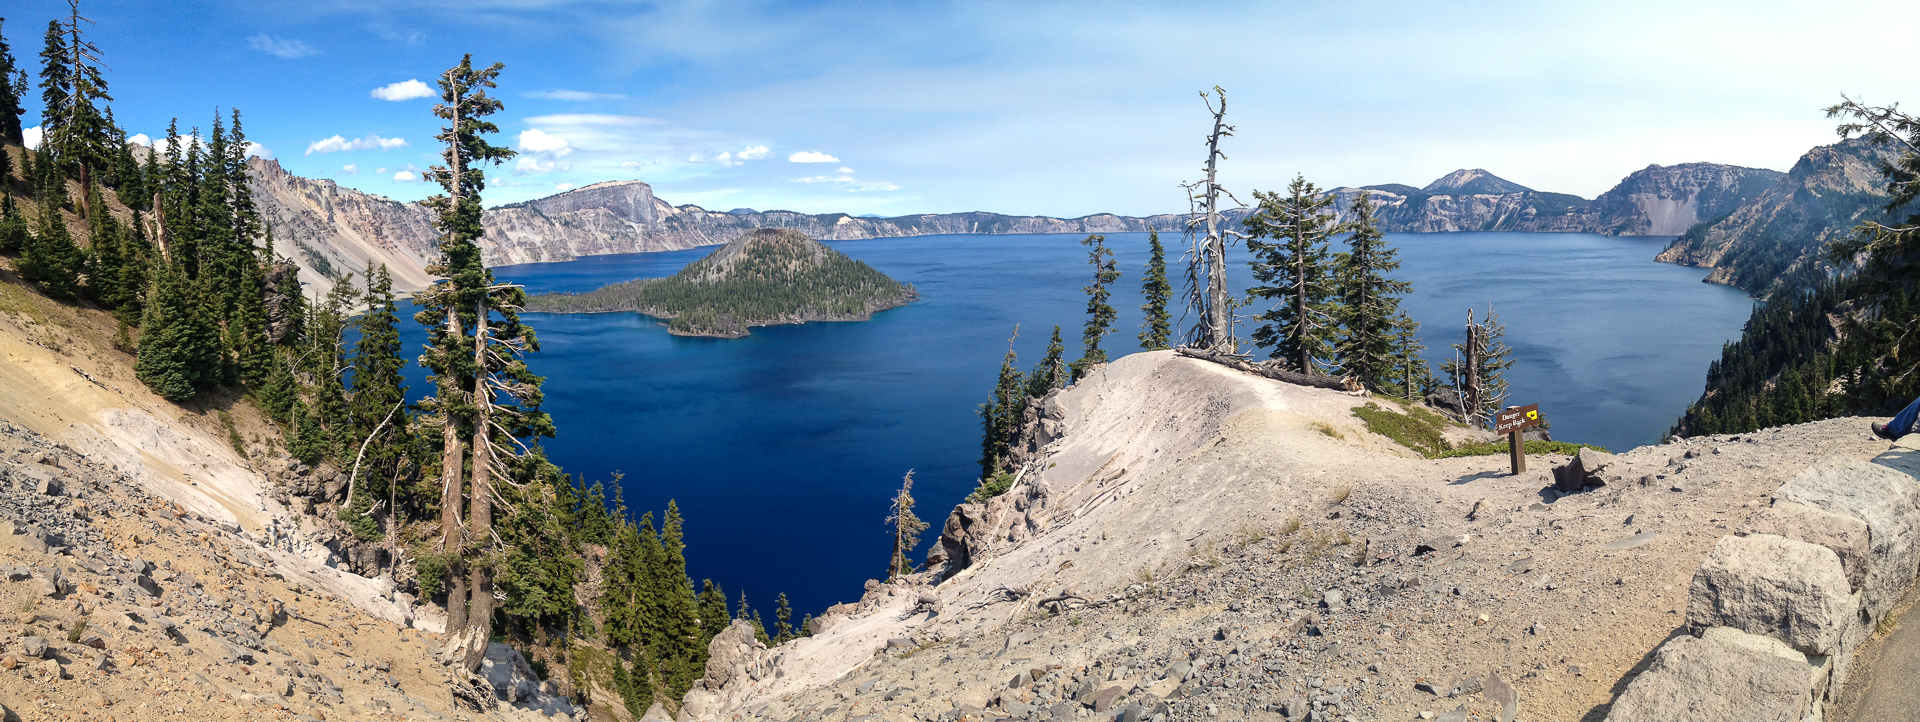 Crater Lake, with Wizard Island, its own mini volcano rising from the lake.